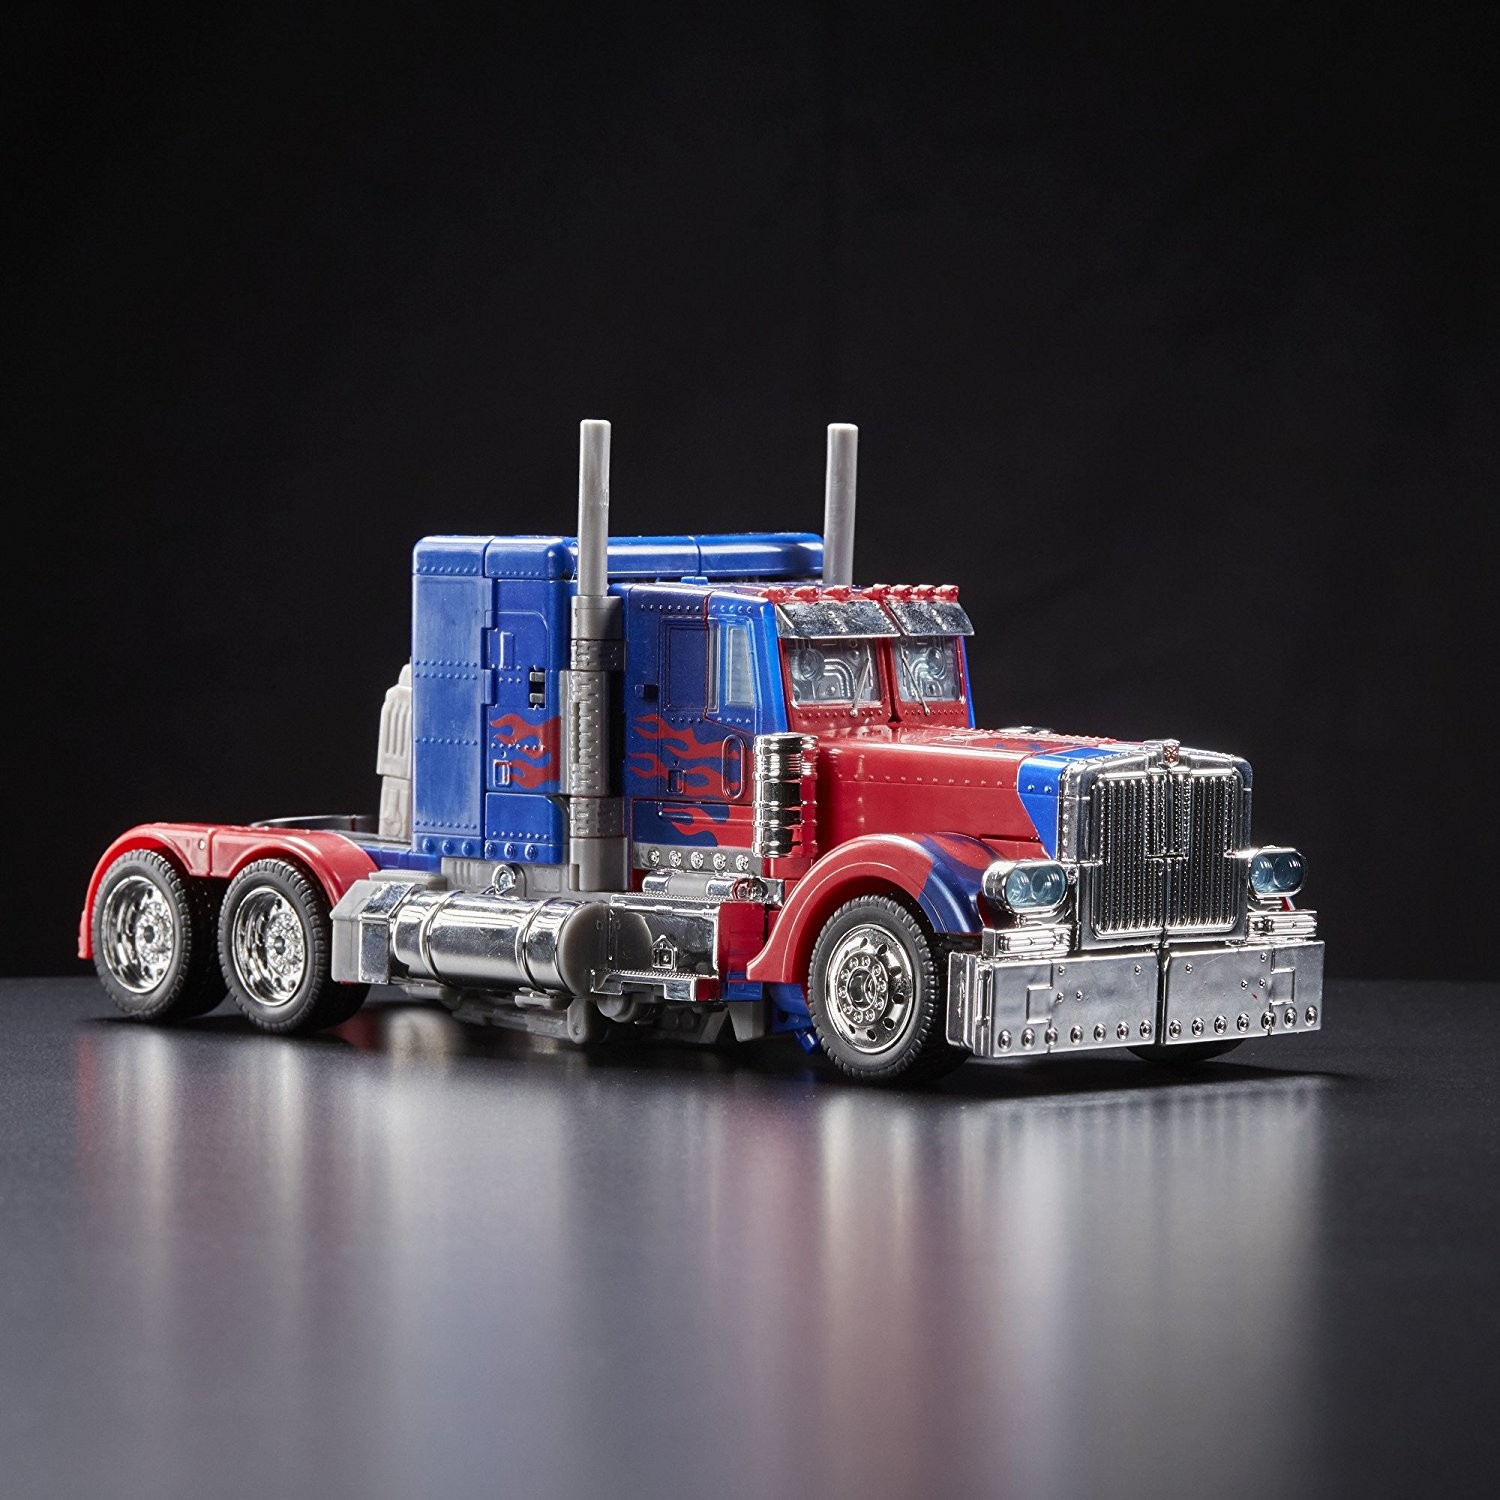 Transformers News: Steal of a Deal: Transformers Movie Anniversary Edition Optimus Prime On Sale for $65.91